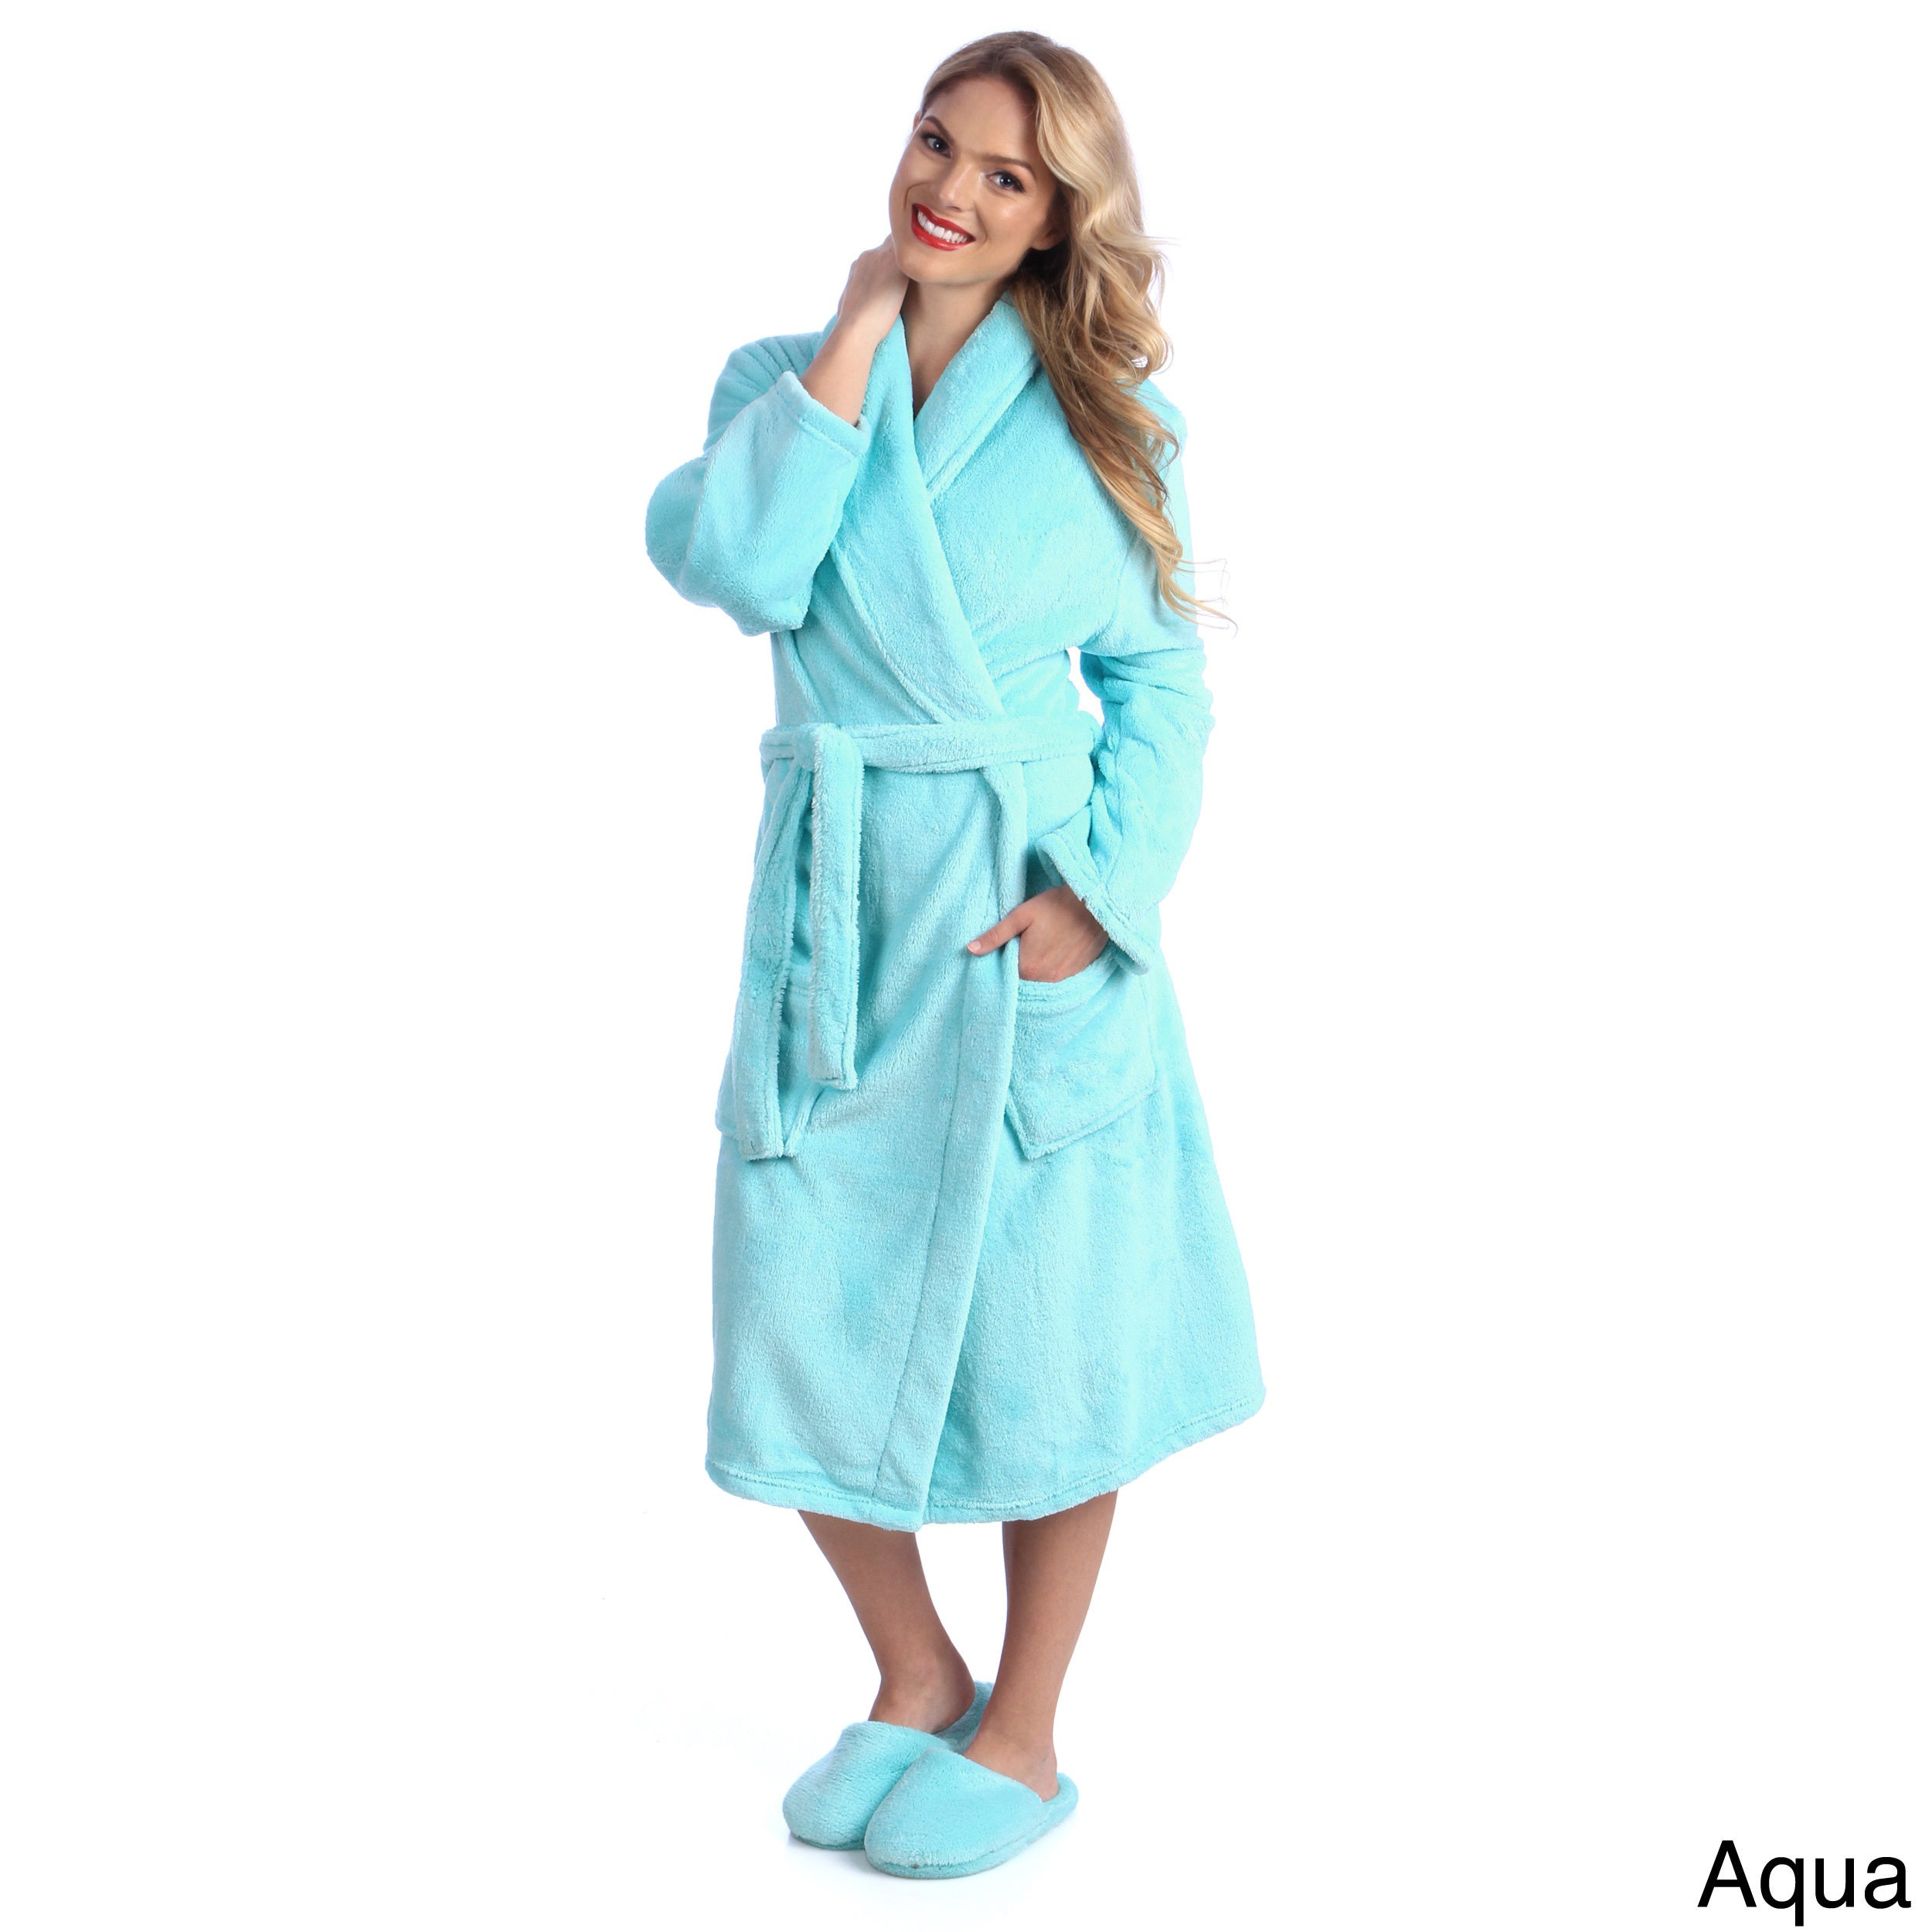 Change Up Your Loungewear with Women's Novelty Robes. Be it bedtime, bath time, or just lounging around the house, women's novelty robes are a soft, comfortable accessory.